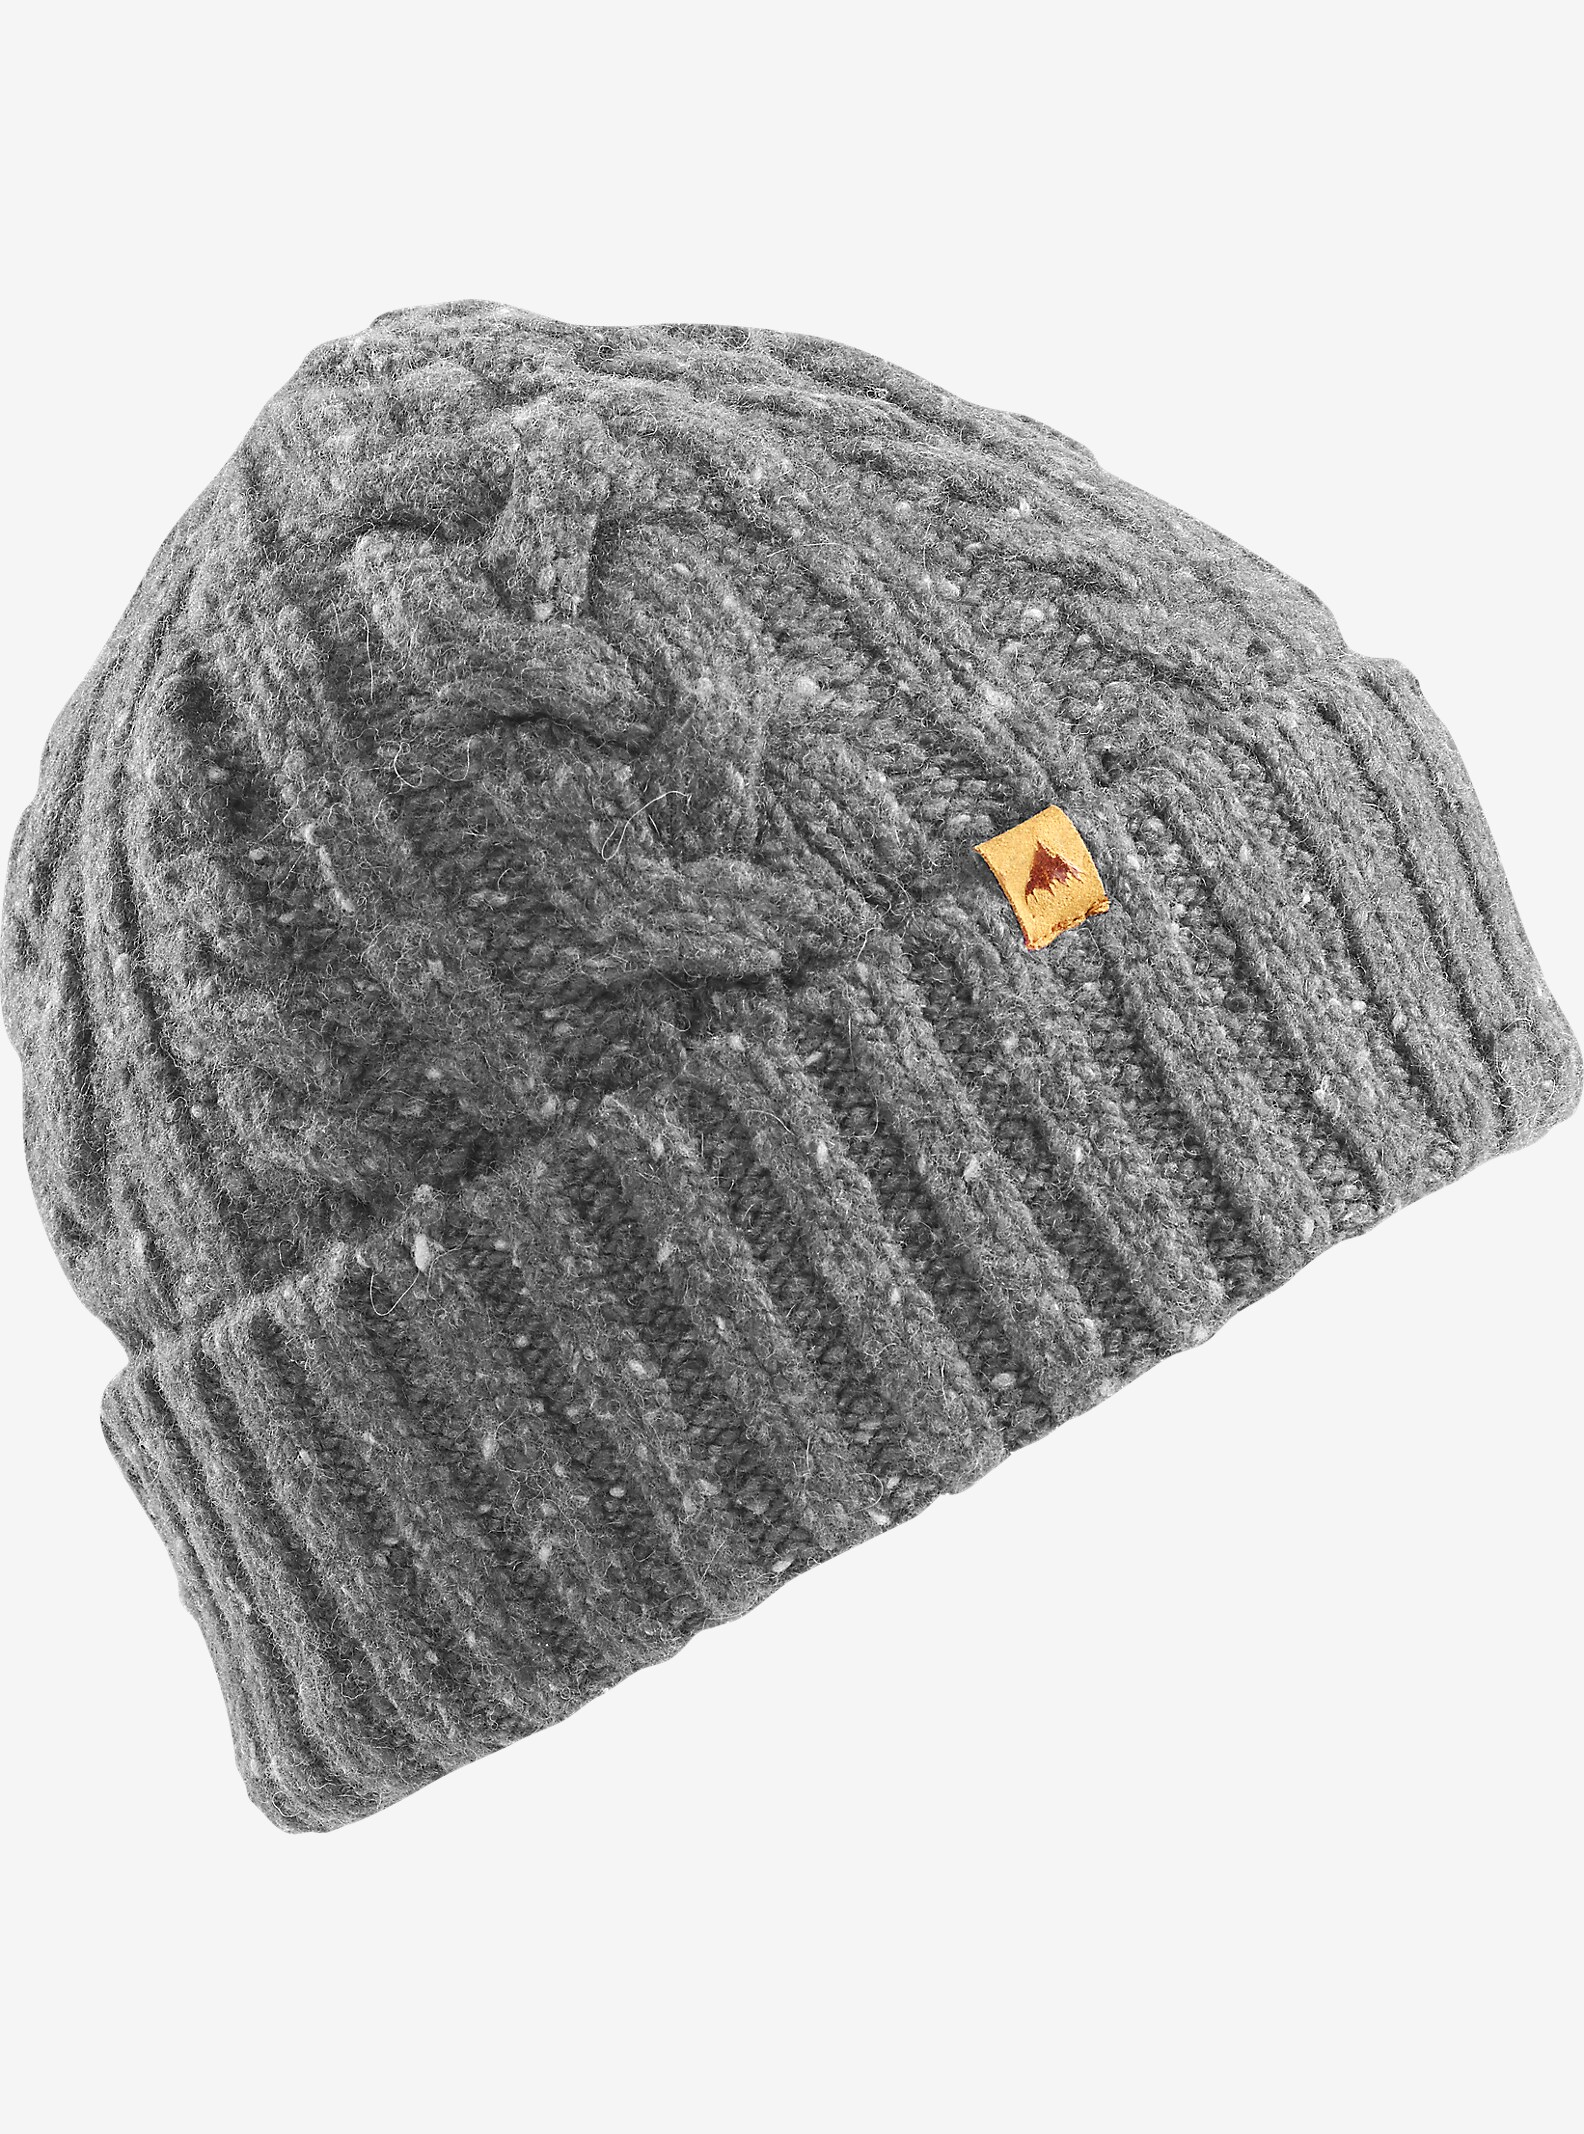 Burton Bering Beanie shown in Iron Gray